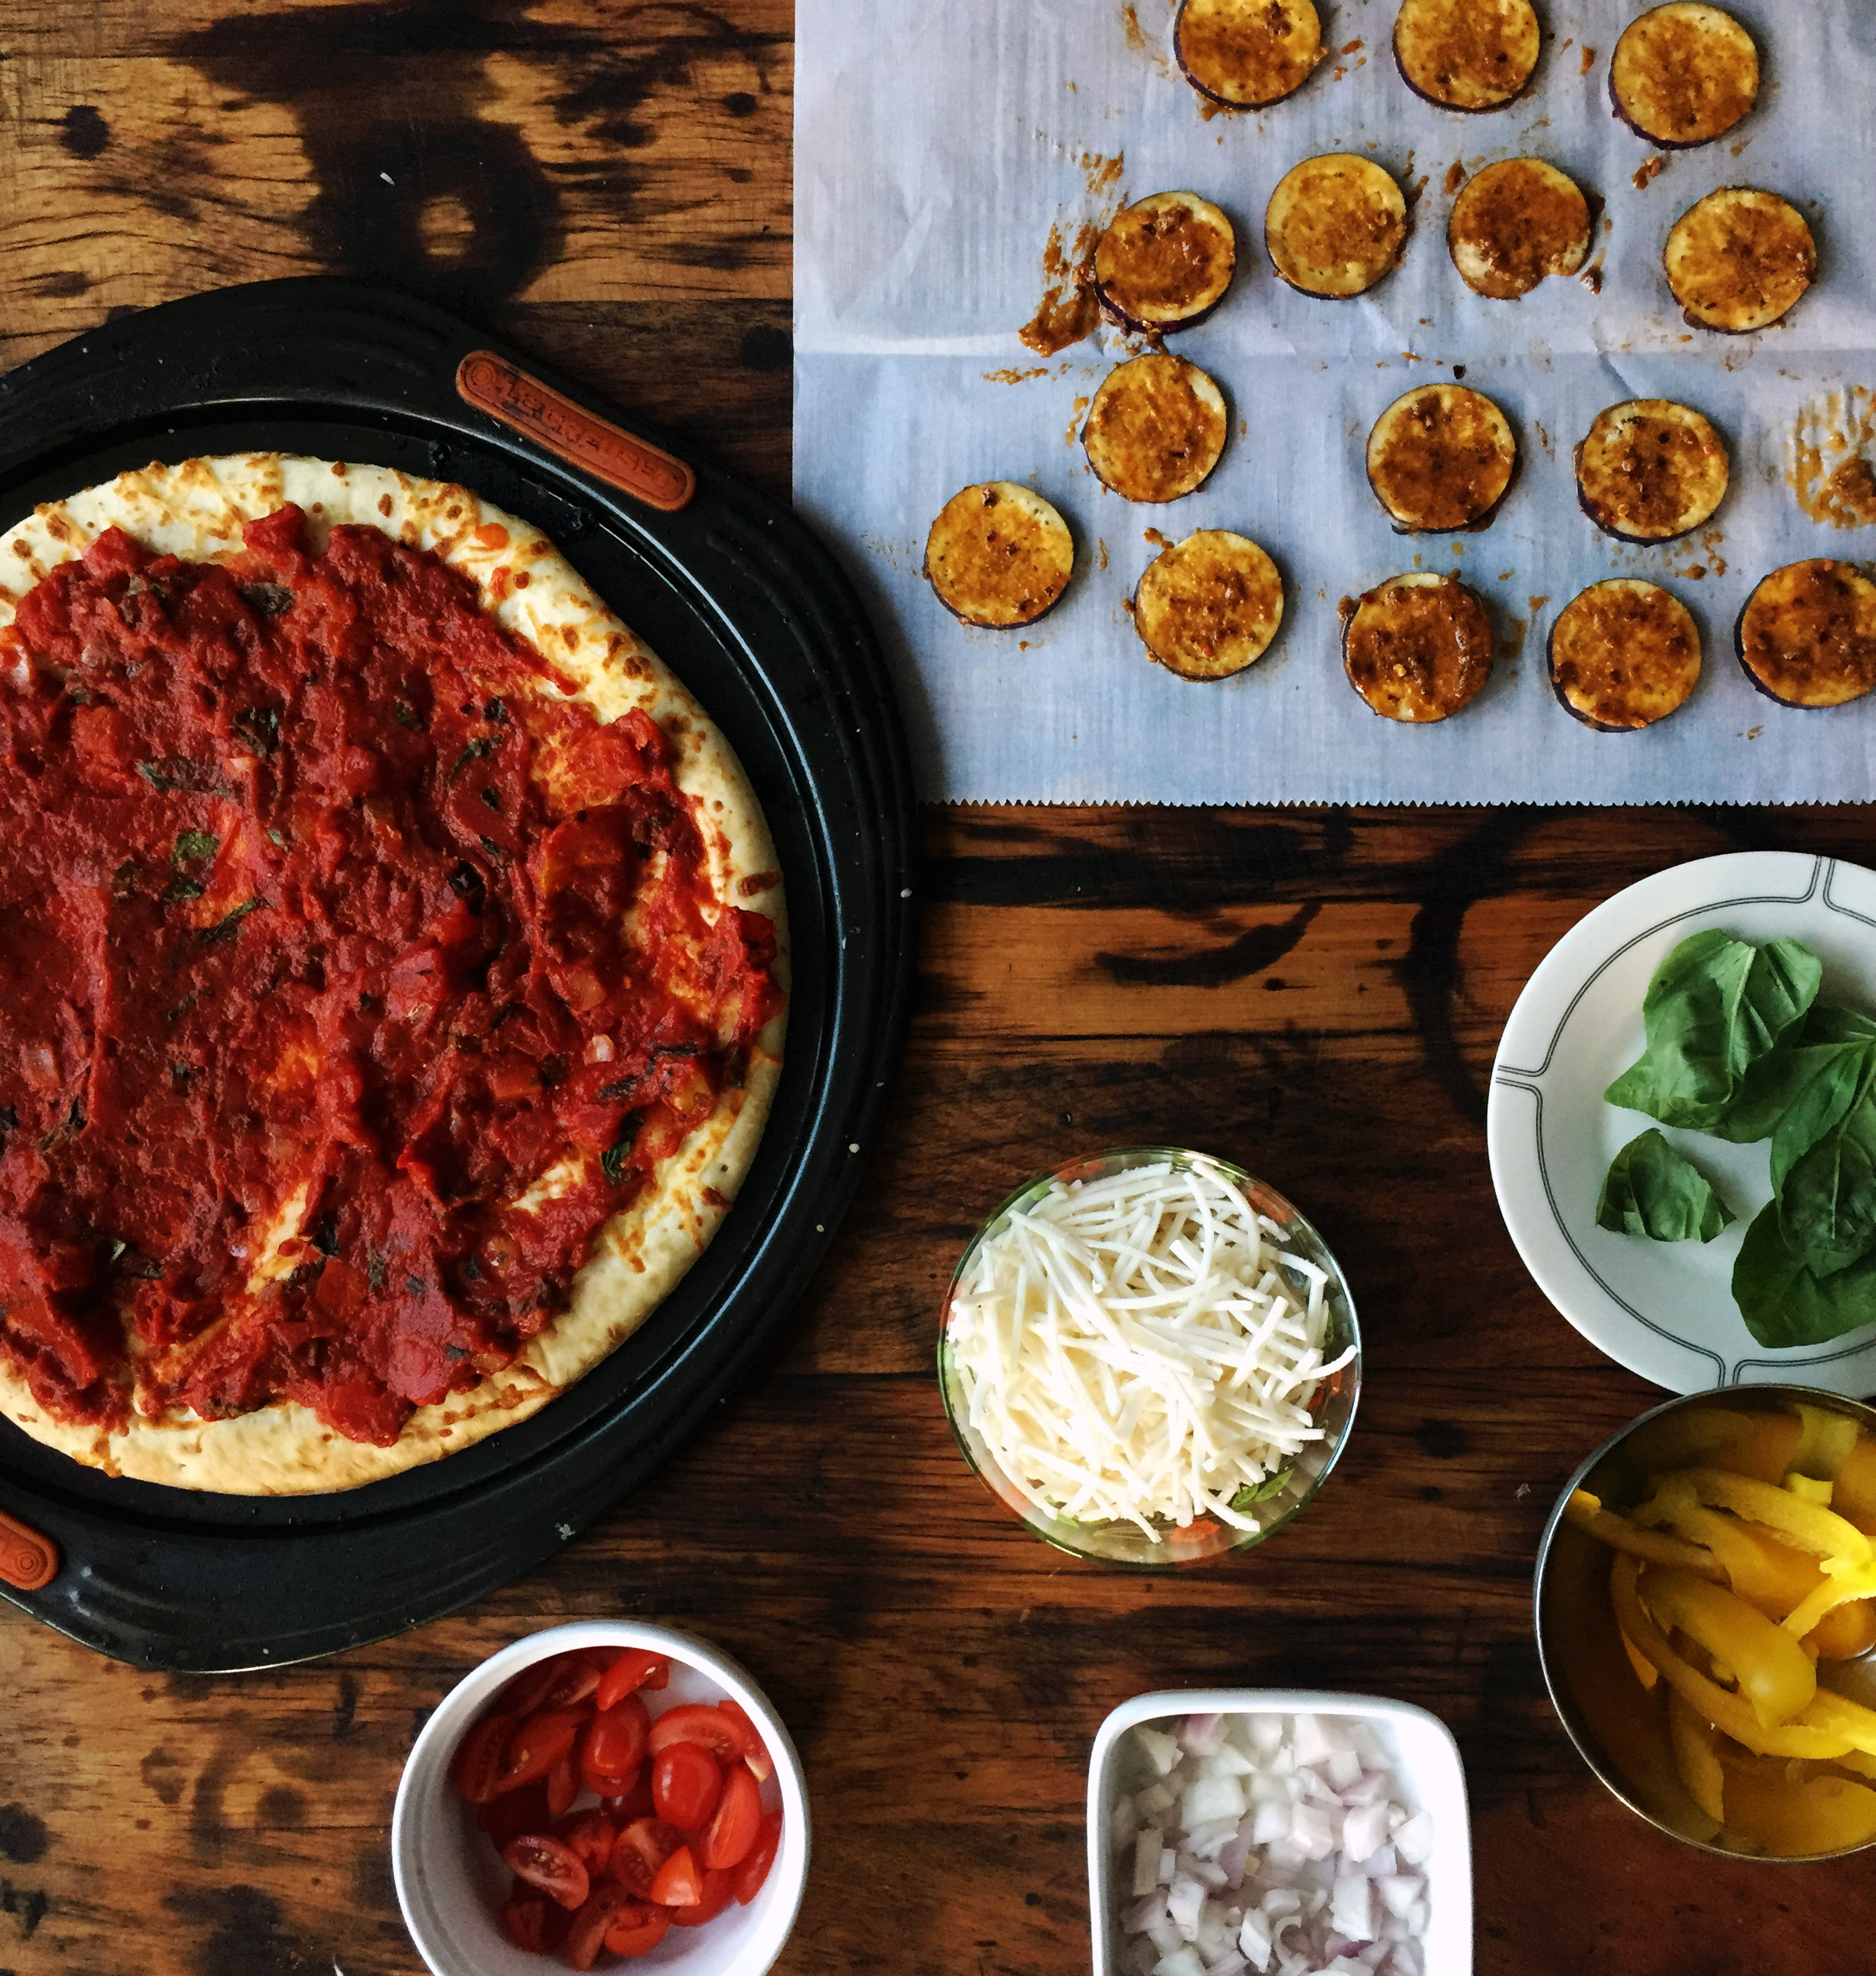 6. Set up a station to put together the pizza. Spread on the sauce to start and begin to build it in layers.